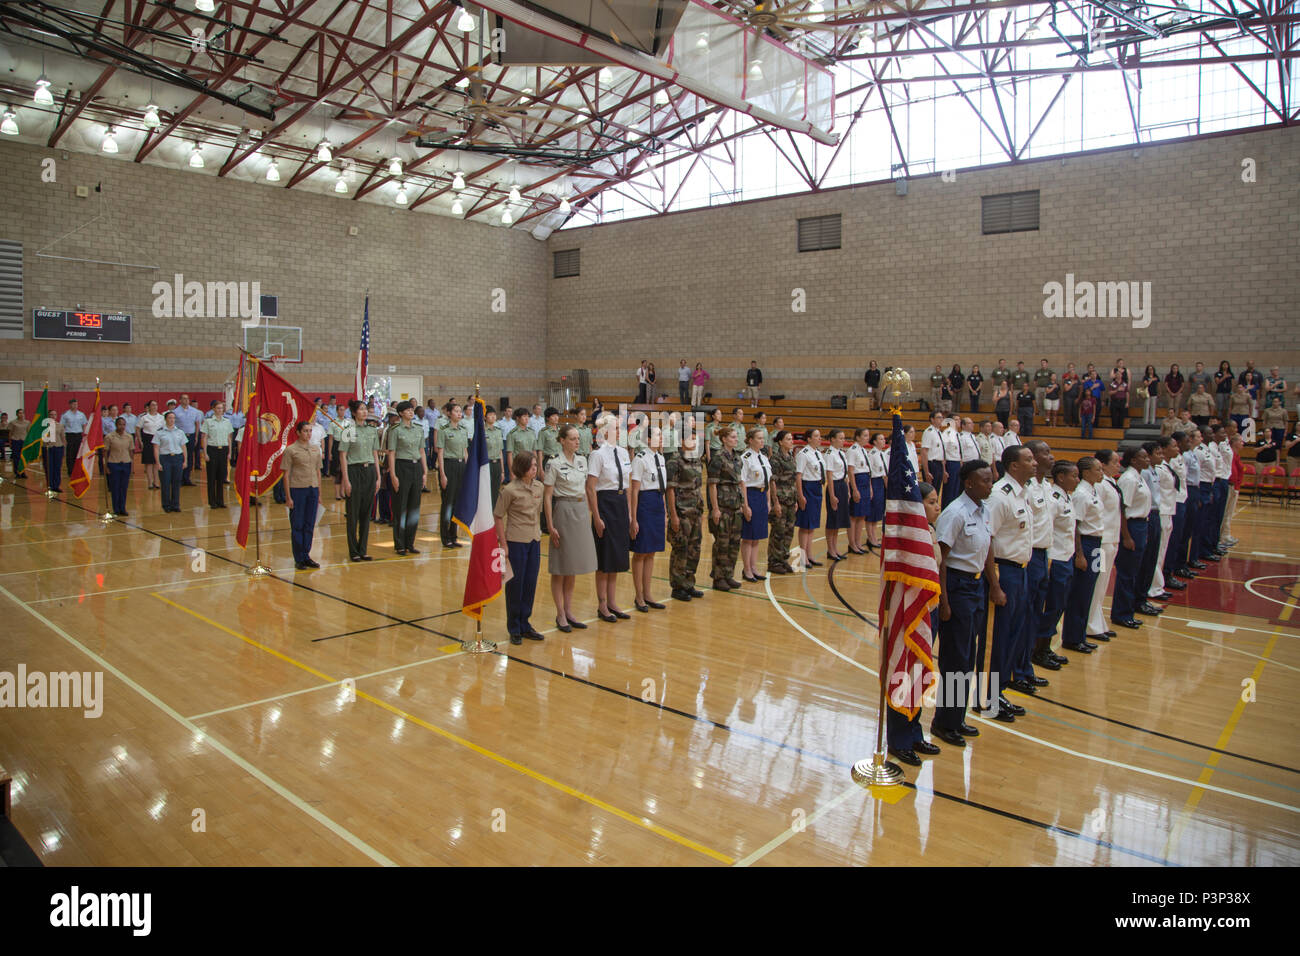 The teams representing the United States, France, China, Canada, Brazil, and Germany in the World Military Women's Basketball Championship stand at attention during the American National Anthem at the 2016 Conseil International Du Sport Militaire (CISM) opening ceremony on Camp Pendleton, Calif., July 25, 2016. CISM championships are hosted around the world and provide an avenue for the United States to project the positive image with valuable military-to-military engagement through sports. (U.S. Marine Corps photo by Cpl. Tyler S. Dietrich) - Stock Image